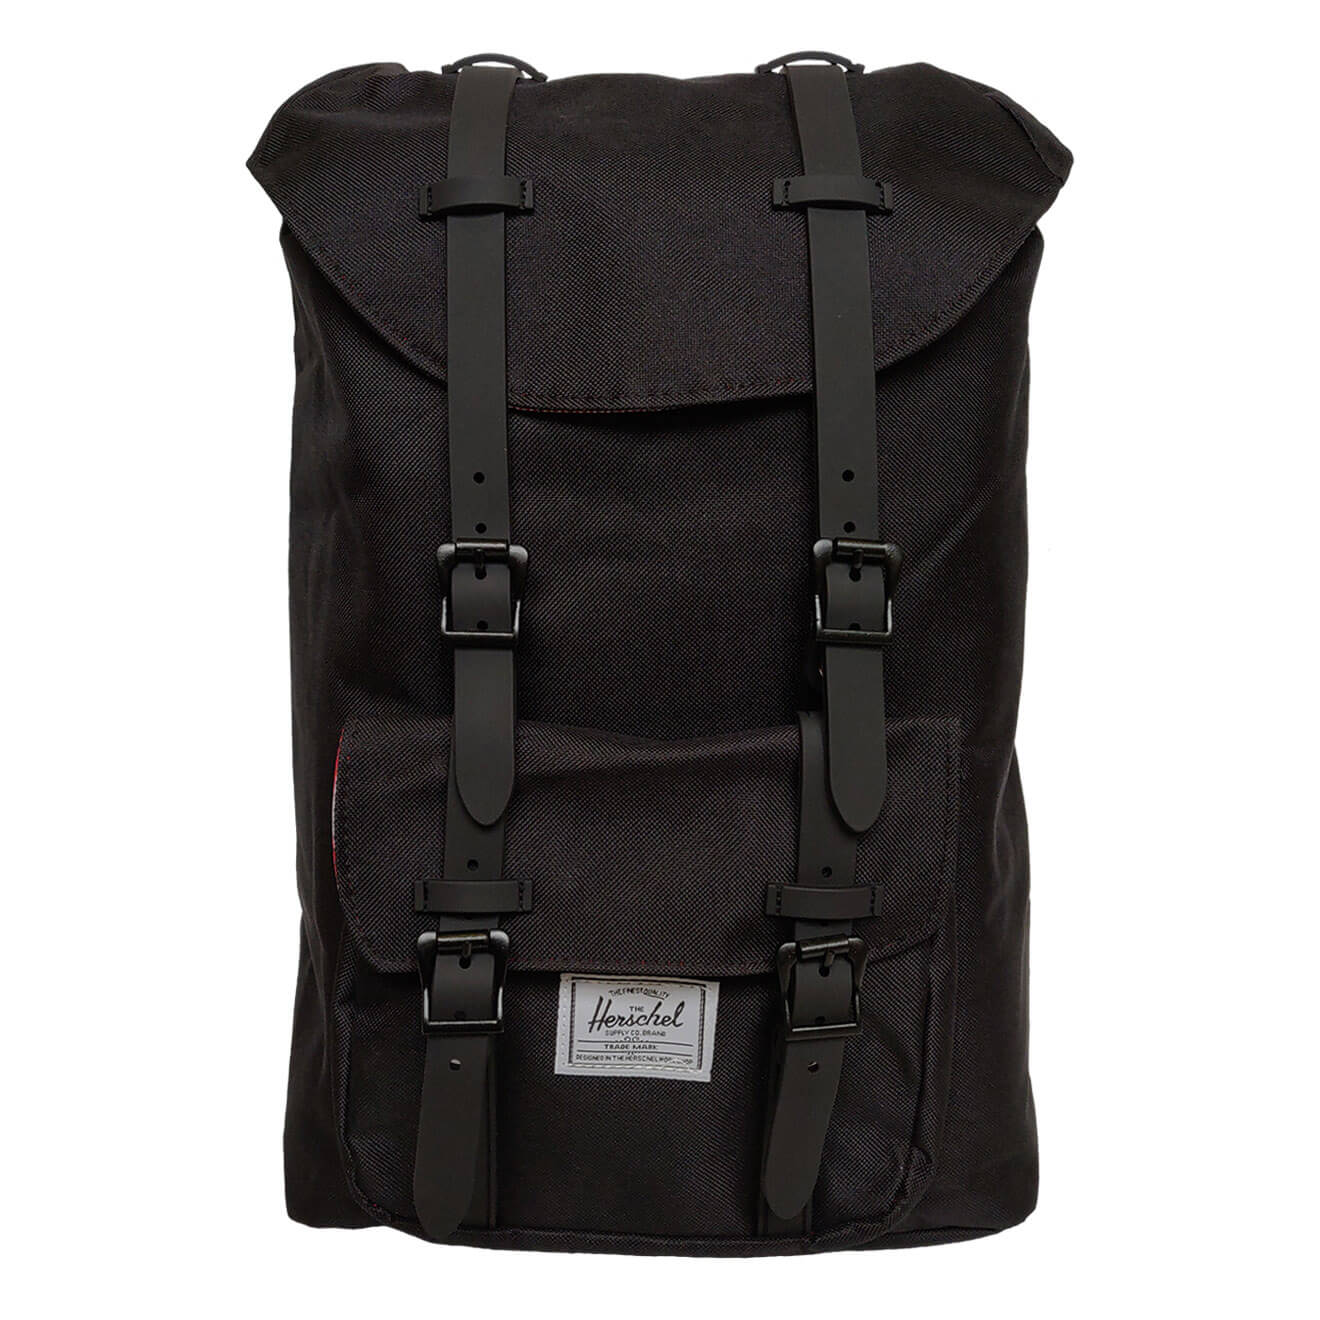 e43b890865a Herschel Little America Black   Black Backpack - Retro Bags